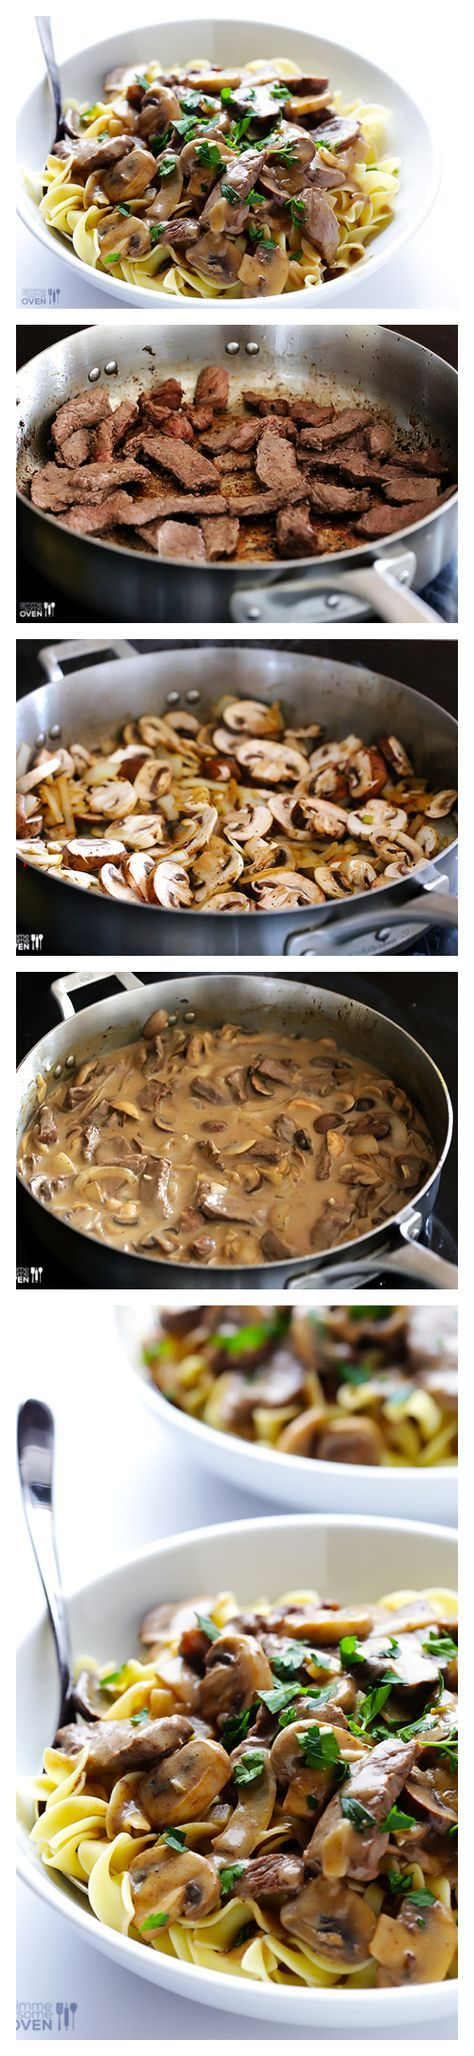 Beef Stroganoff -- a classic comfort food dish that's lightened up and ready to go in 30 minutes | gimmesomeoven.com @Ali Ebright (Gimme Some Oven)